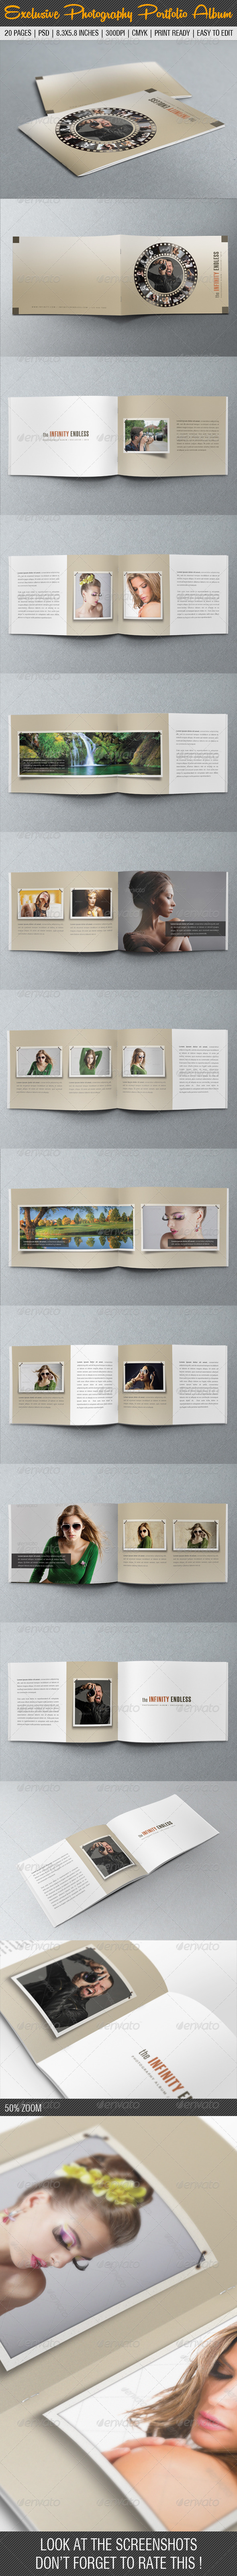 Exclusive Photography Portfolio Album 04 - Photo Albums Print Templates